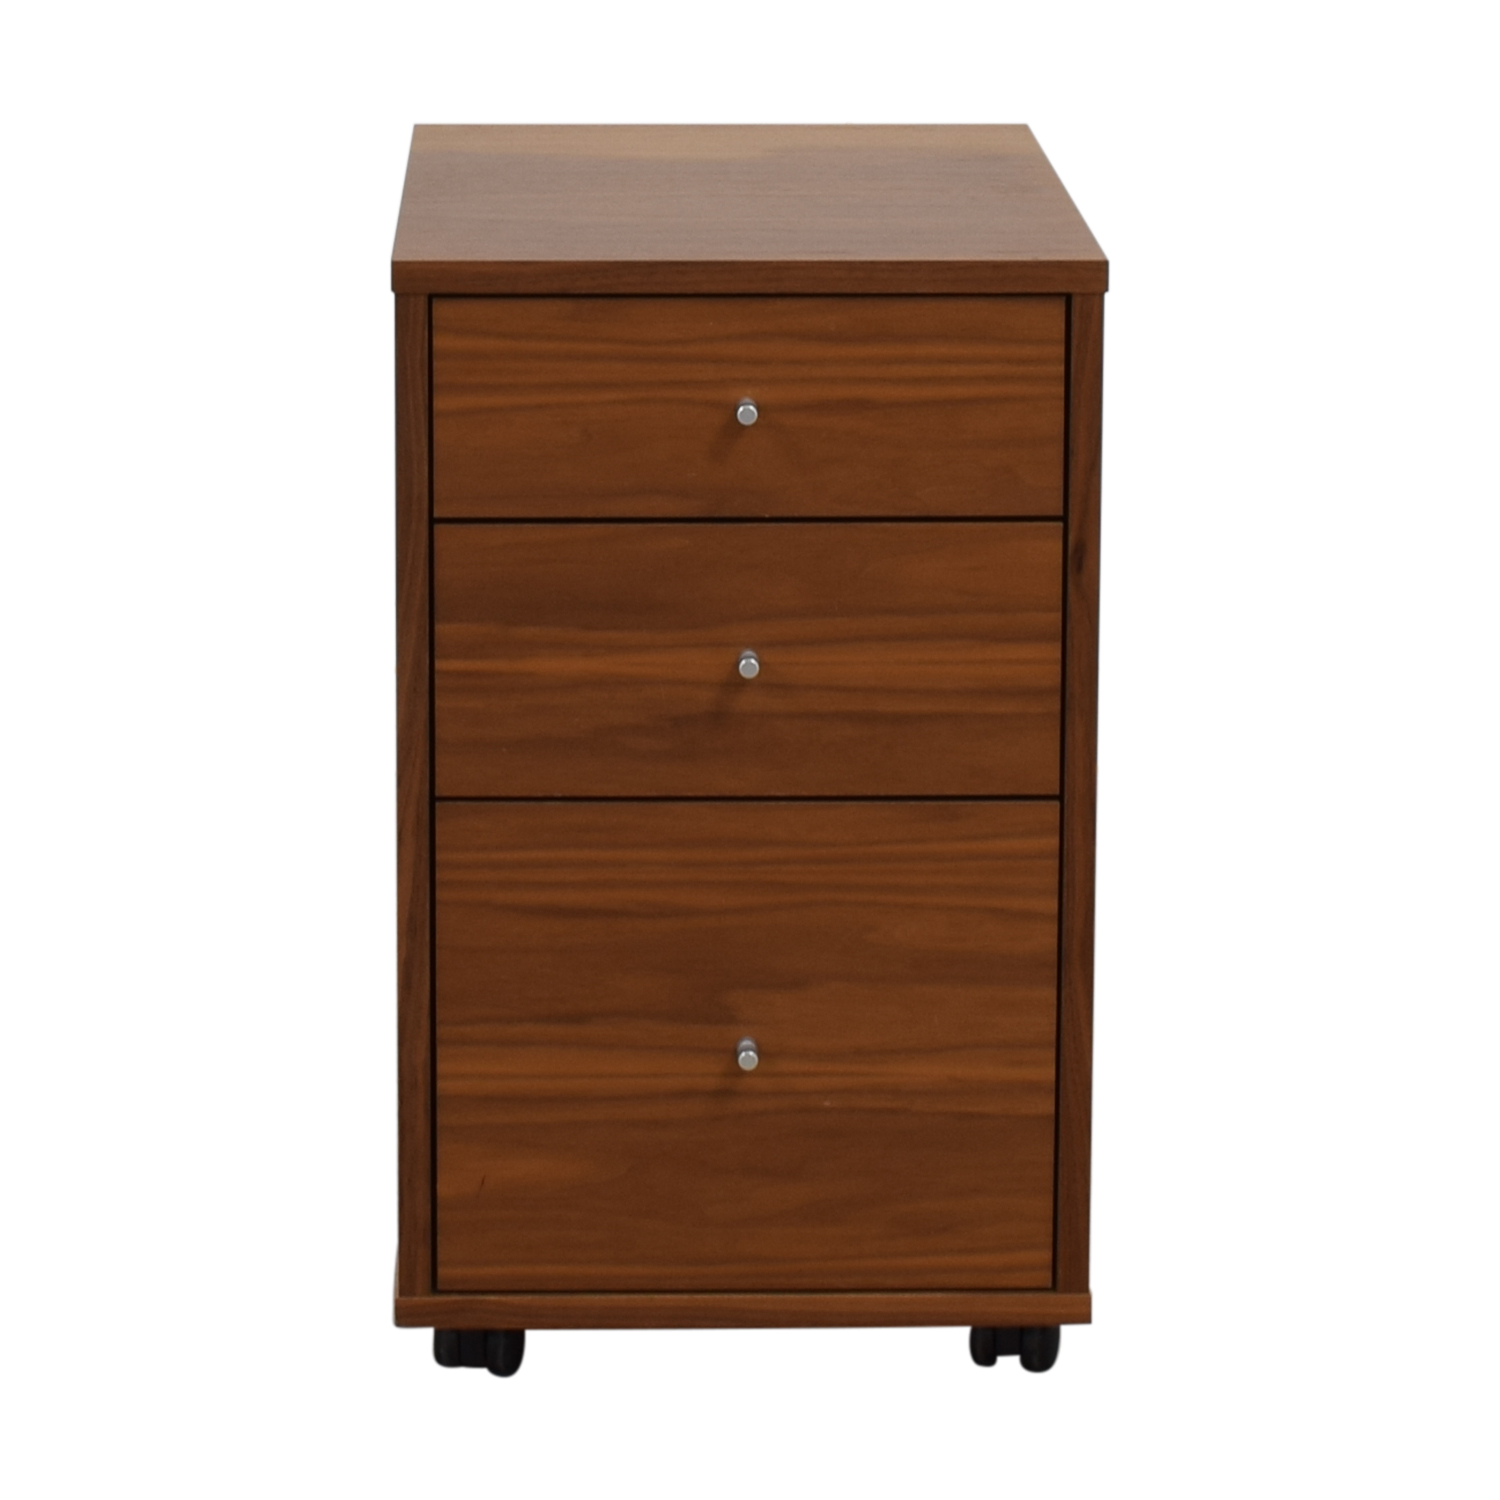 Room & Board Room & Board Sequel Rolling Three-Drawer File Cabinet nj